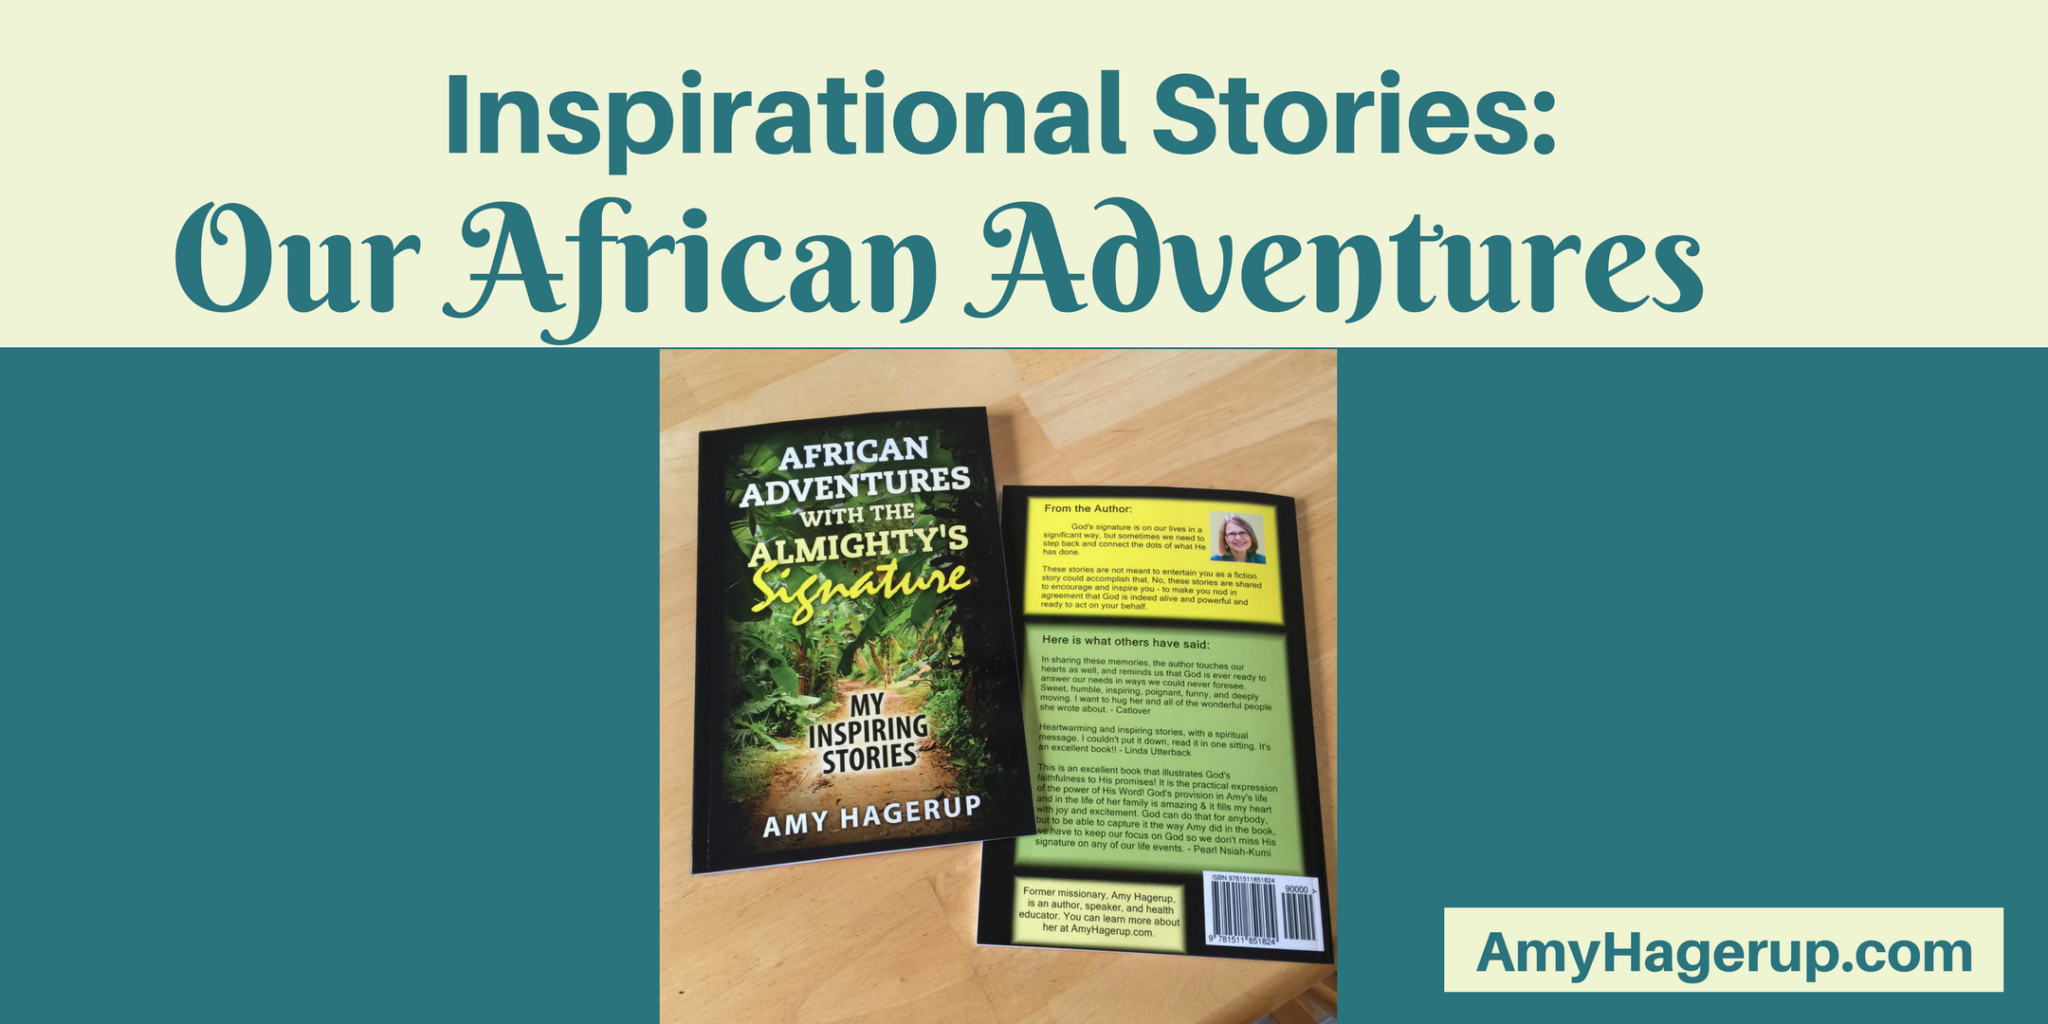 Check out these amazing stories from our missionary days in Africa.